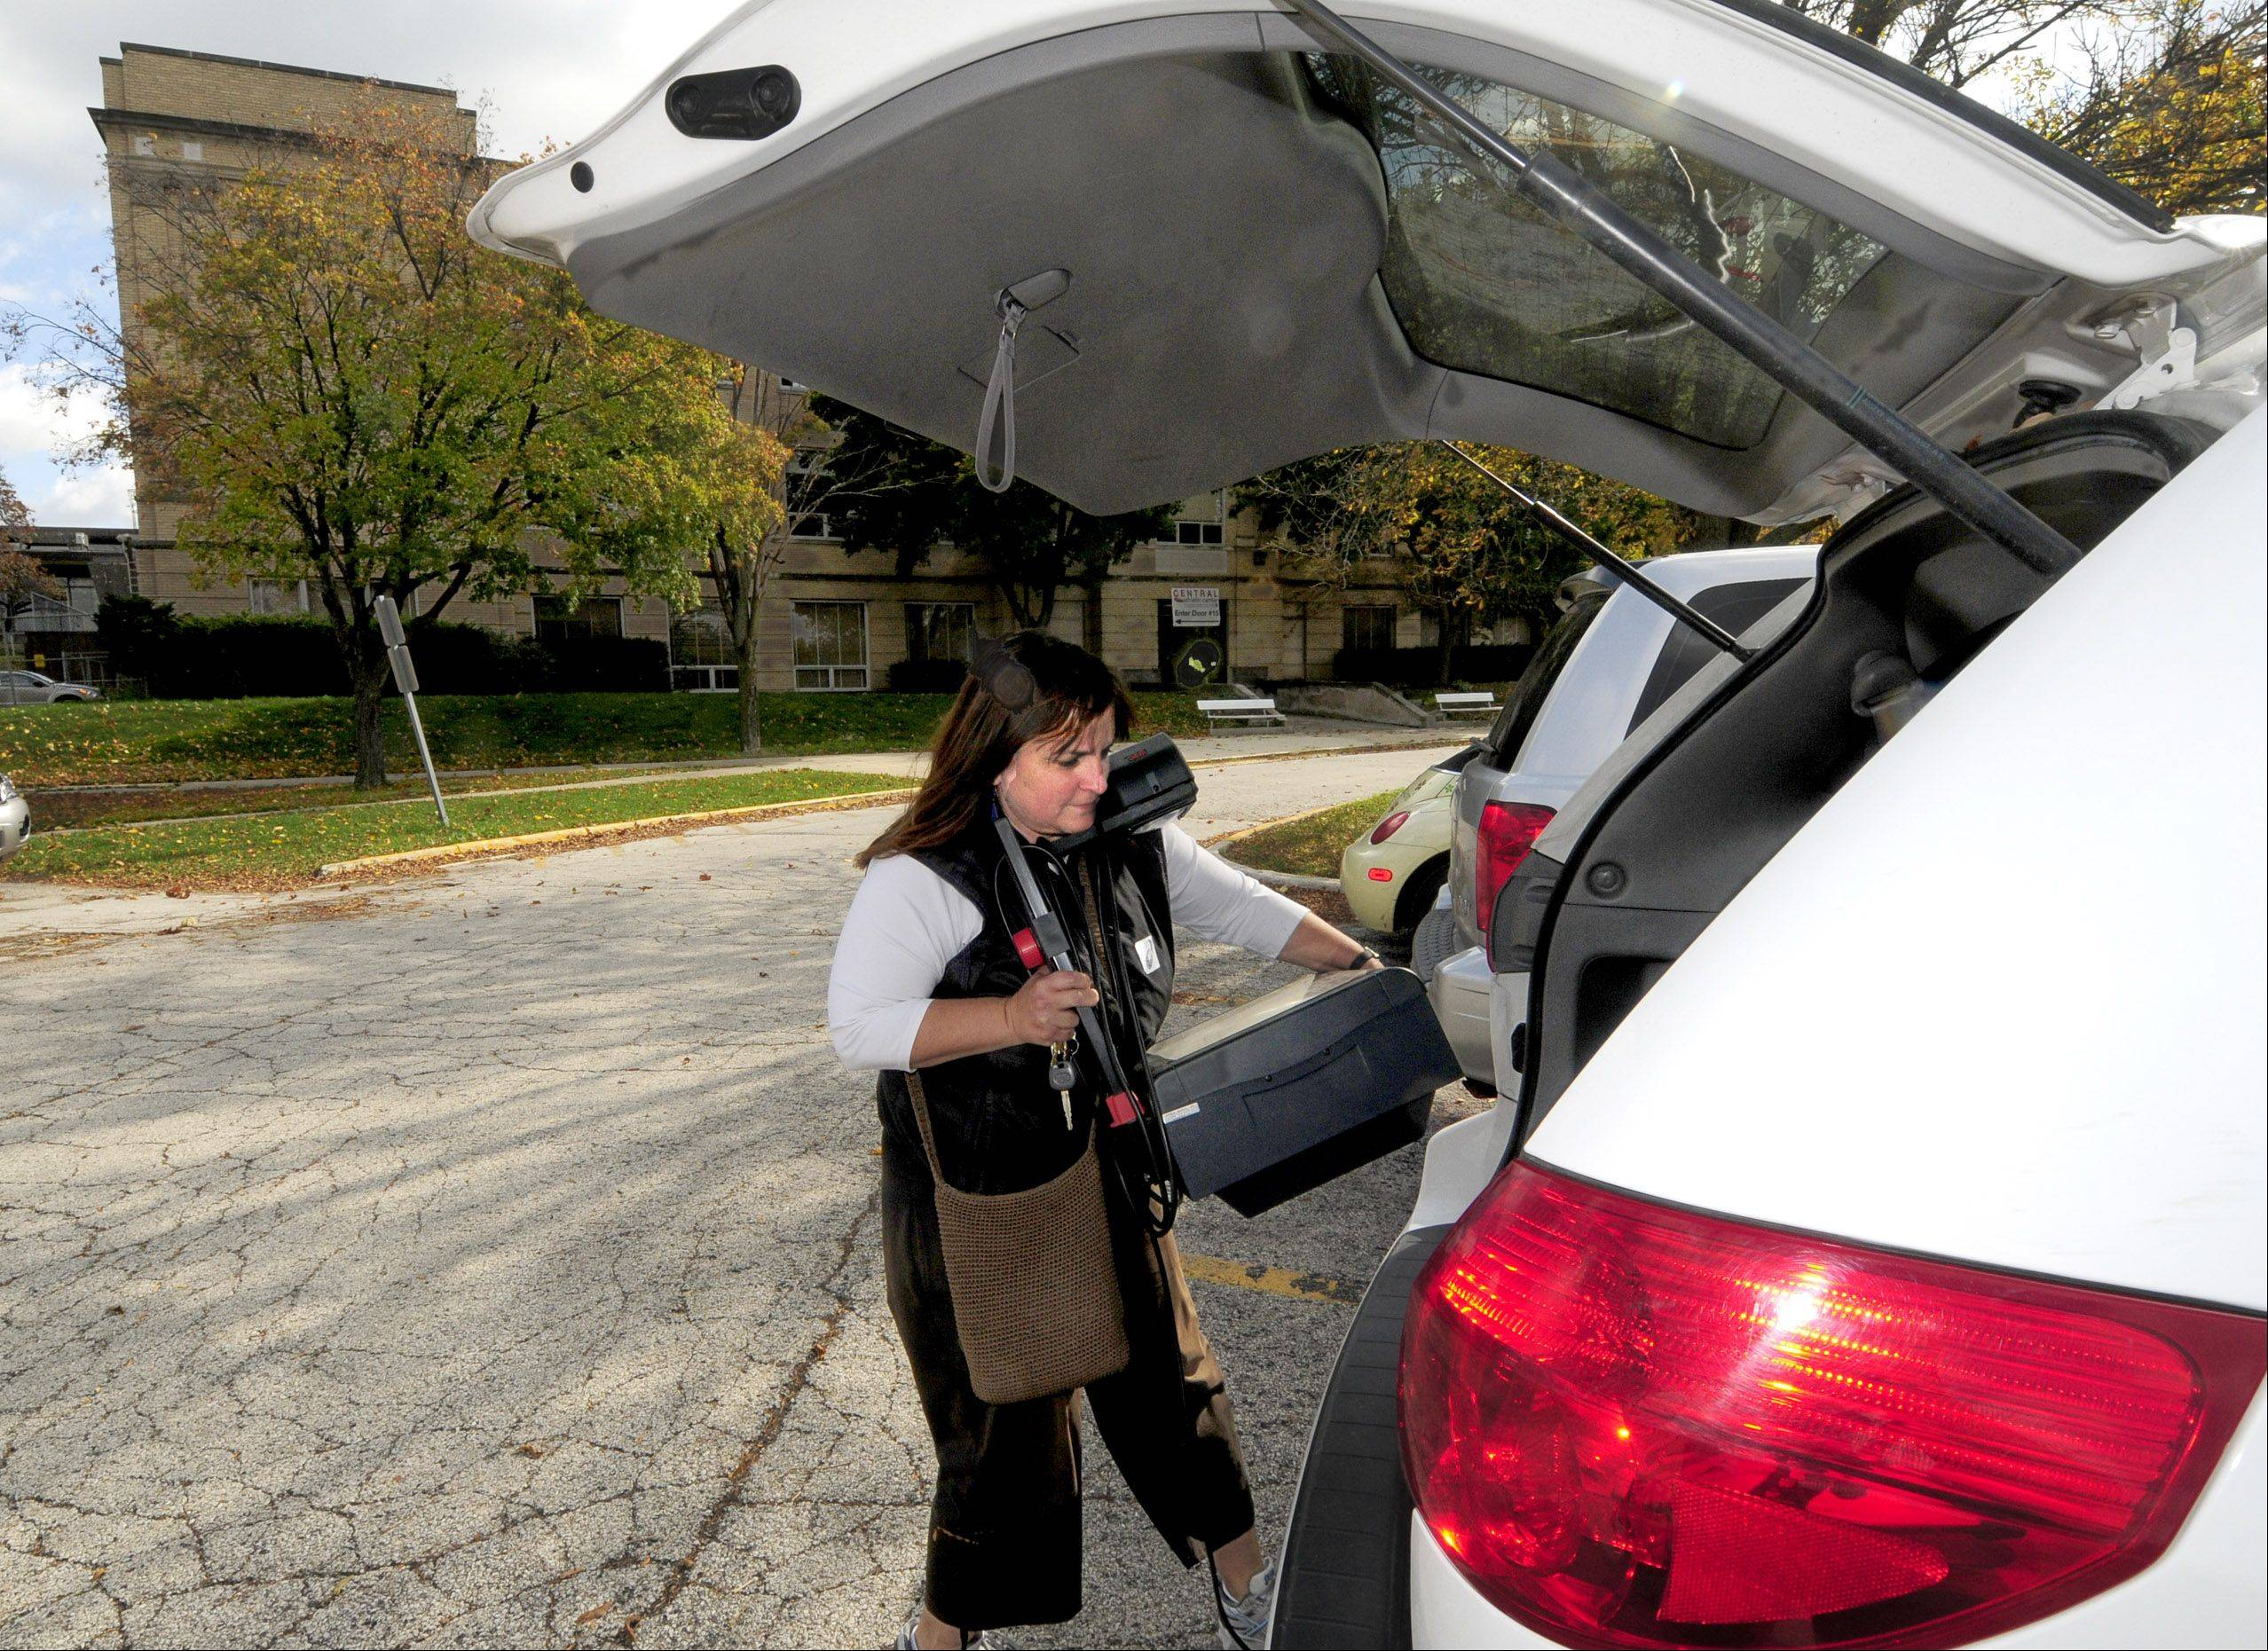 After plugging it in to make sure it works, Cindy Spivey loads an overhead projector into her car.